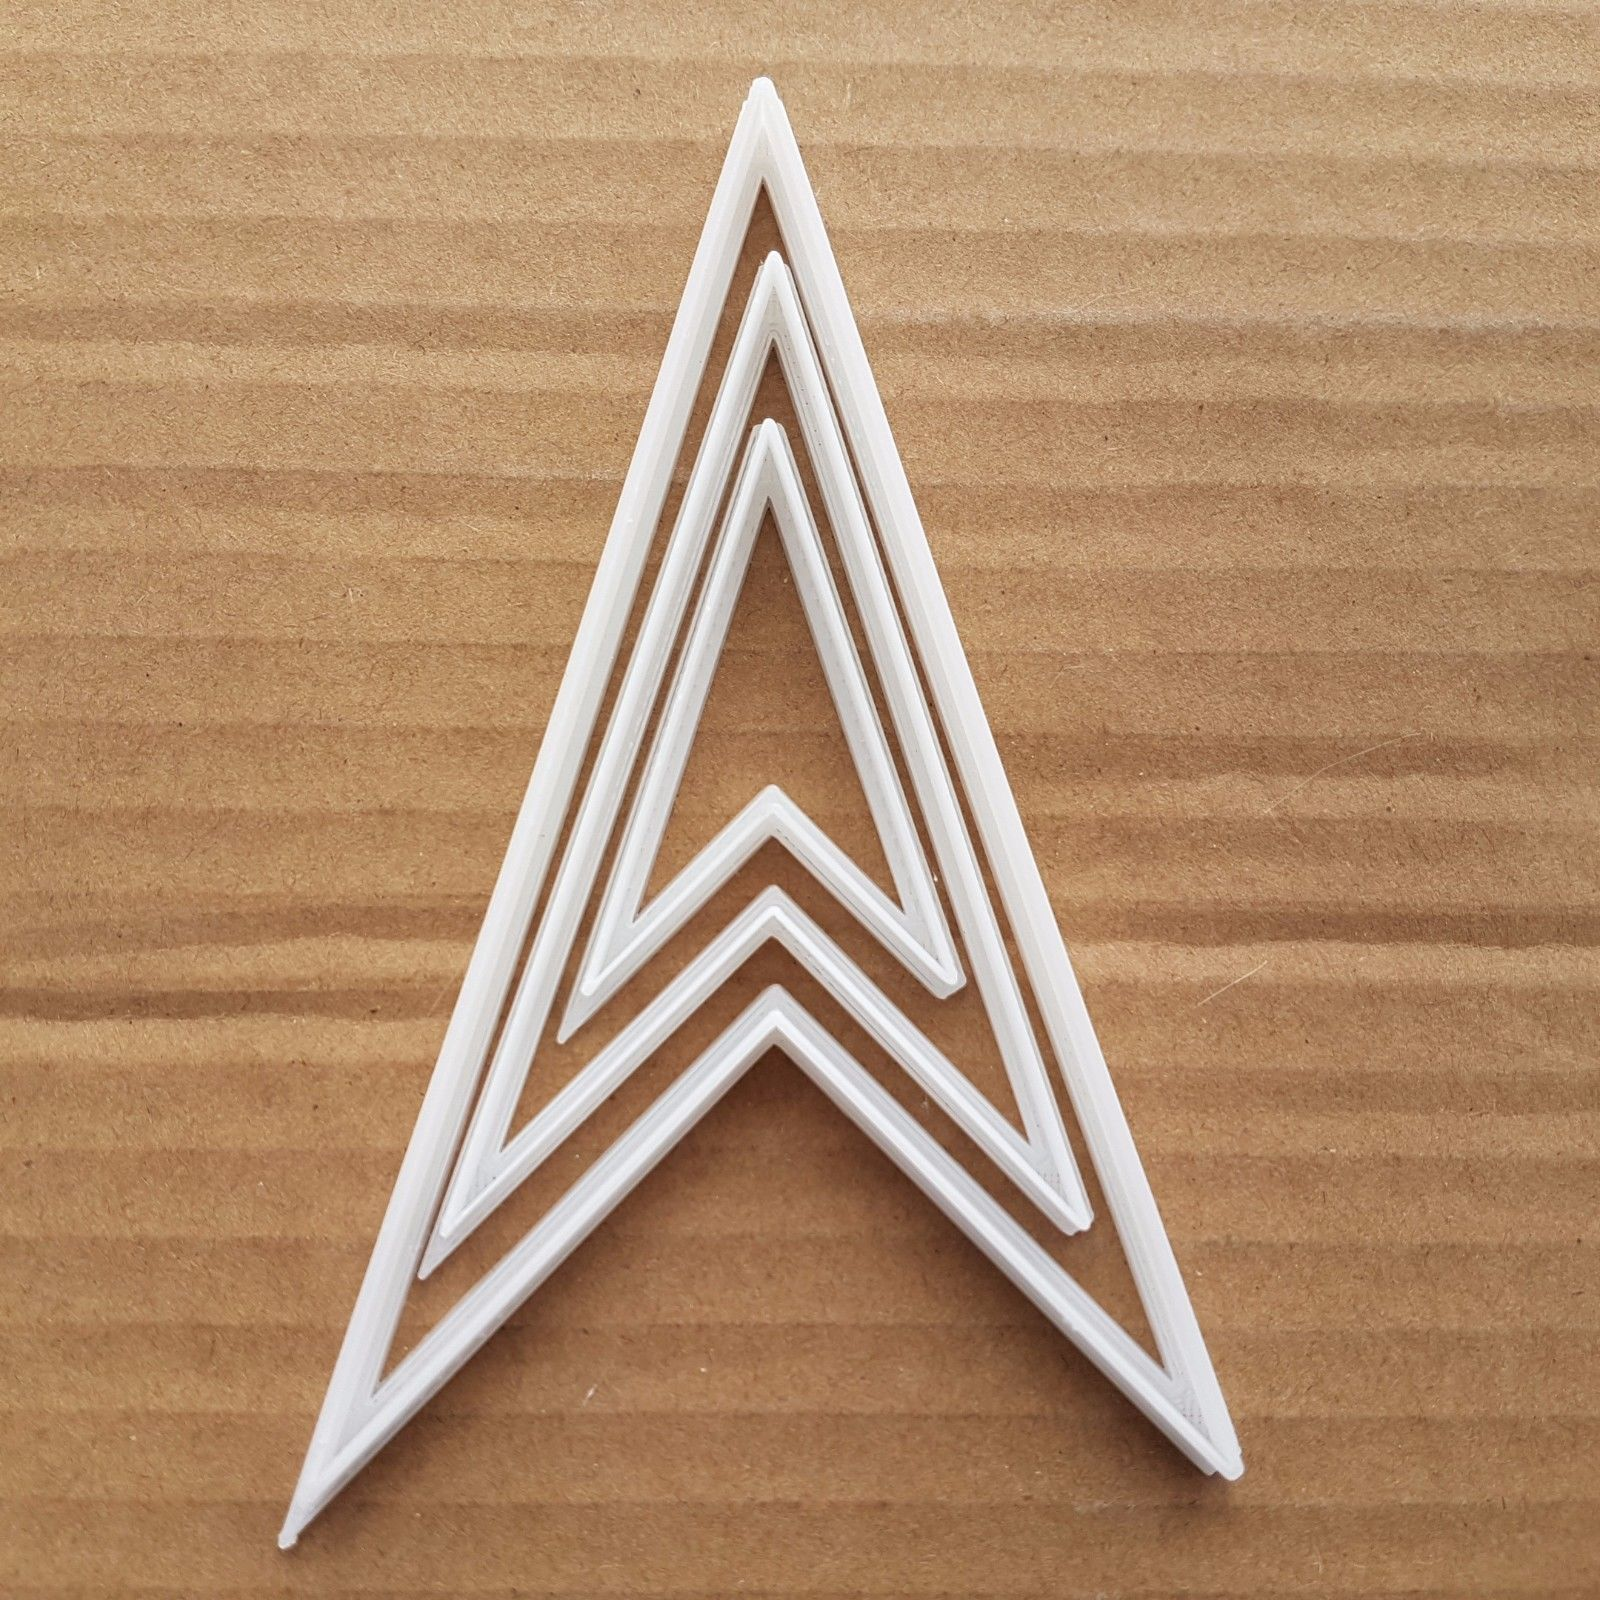 Location Arrow Symbol Shape Cookie Cutter Dough Biscuit Pastry